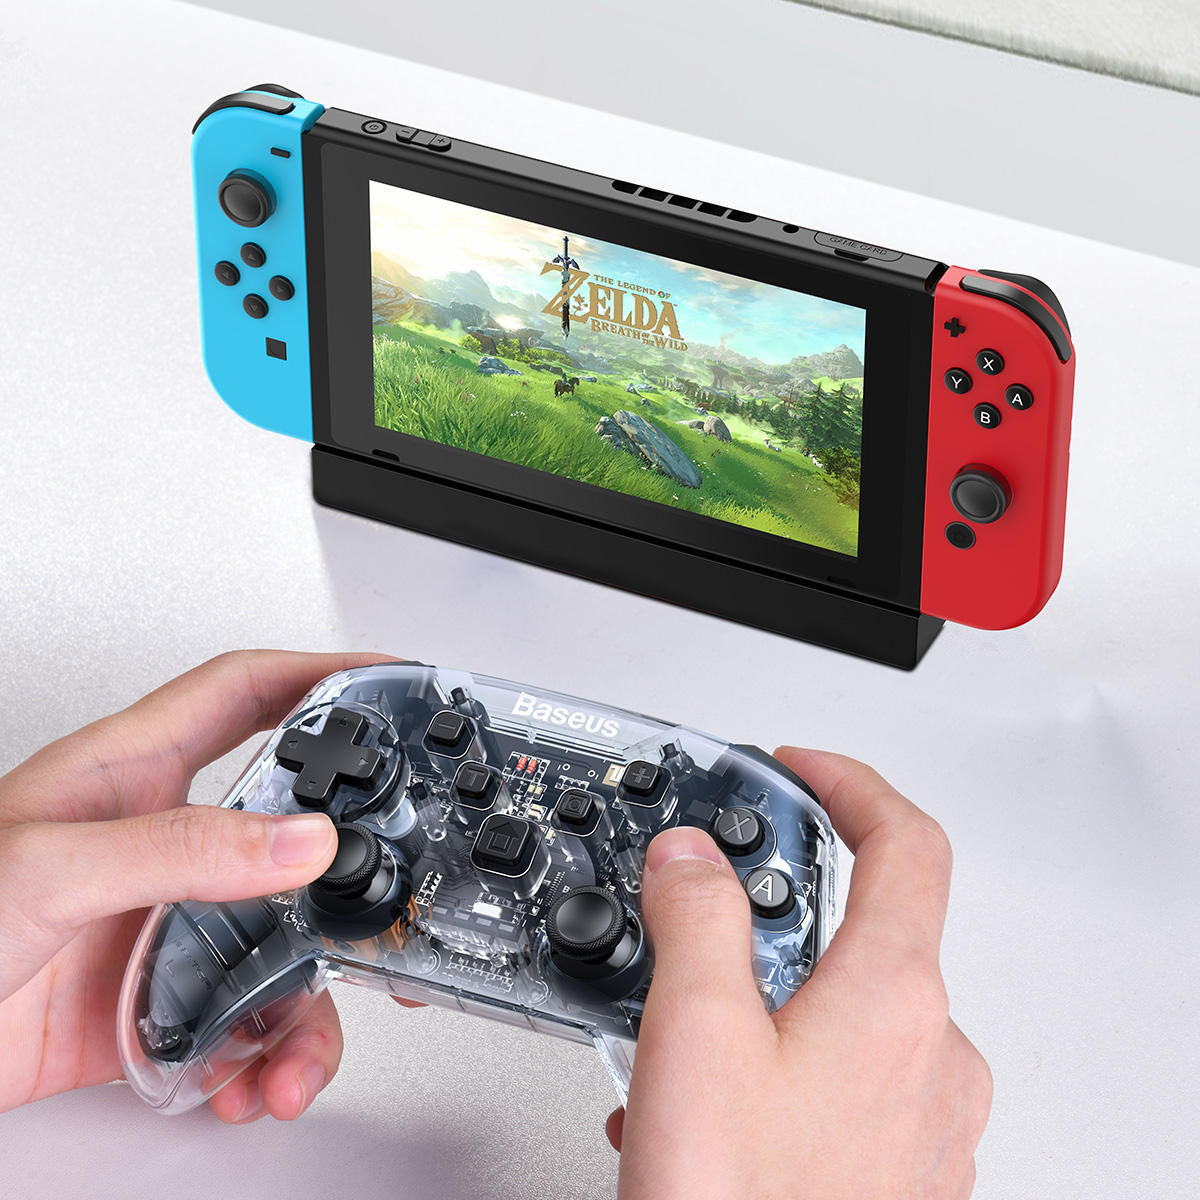 Bakeey Bluetooth 4.0 Gaming Wired Wireless Smart Connection With Triangle Bracket Charging Gamepad For iPhone X XS HUAWEI P30 Mate20 Pro Oneplus 7 XIAOMI MI9 S10 S10+ - 7